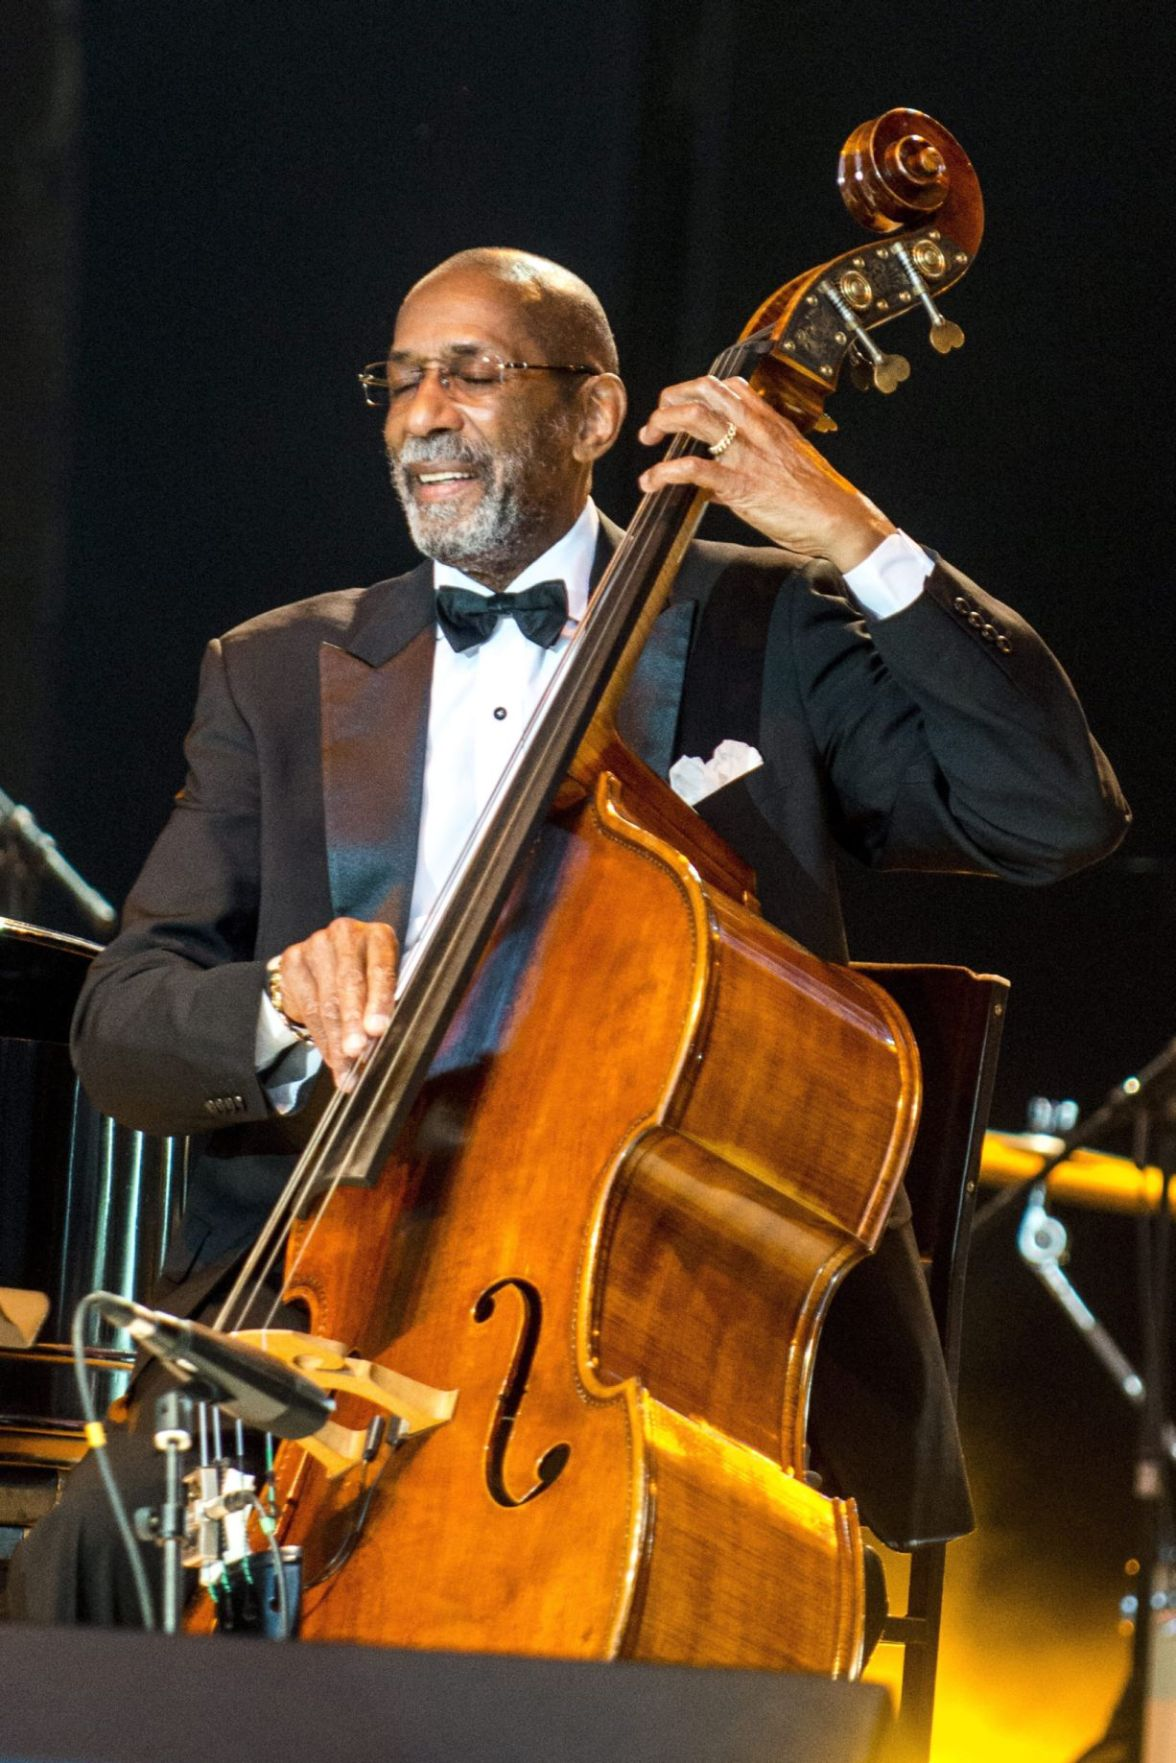 Atlantic City Golf >> Bassist Ron Carter brings a 'scientific curiosity' to Exit 0 | Headliners | pressofatlanticcity.com